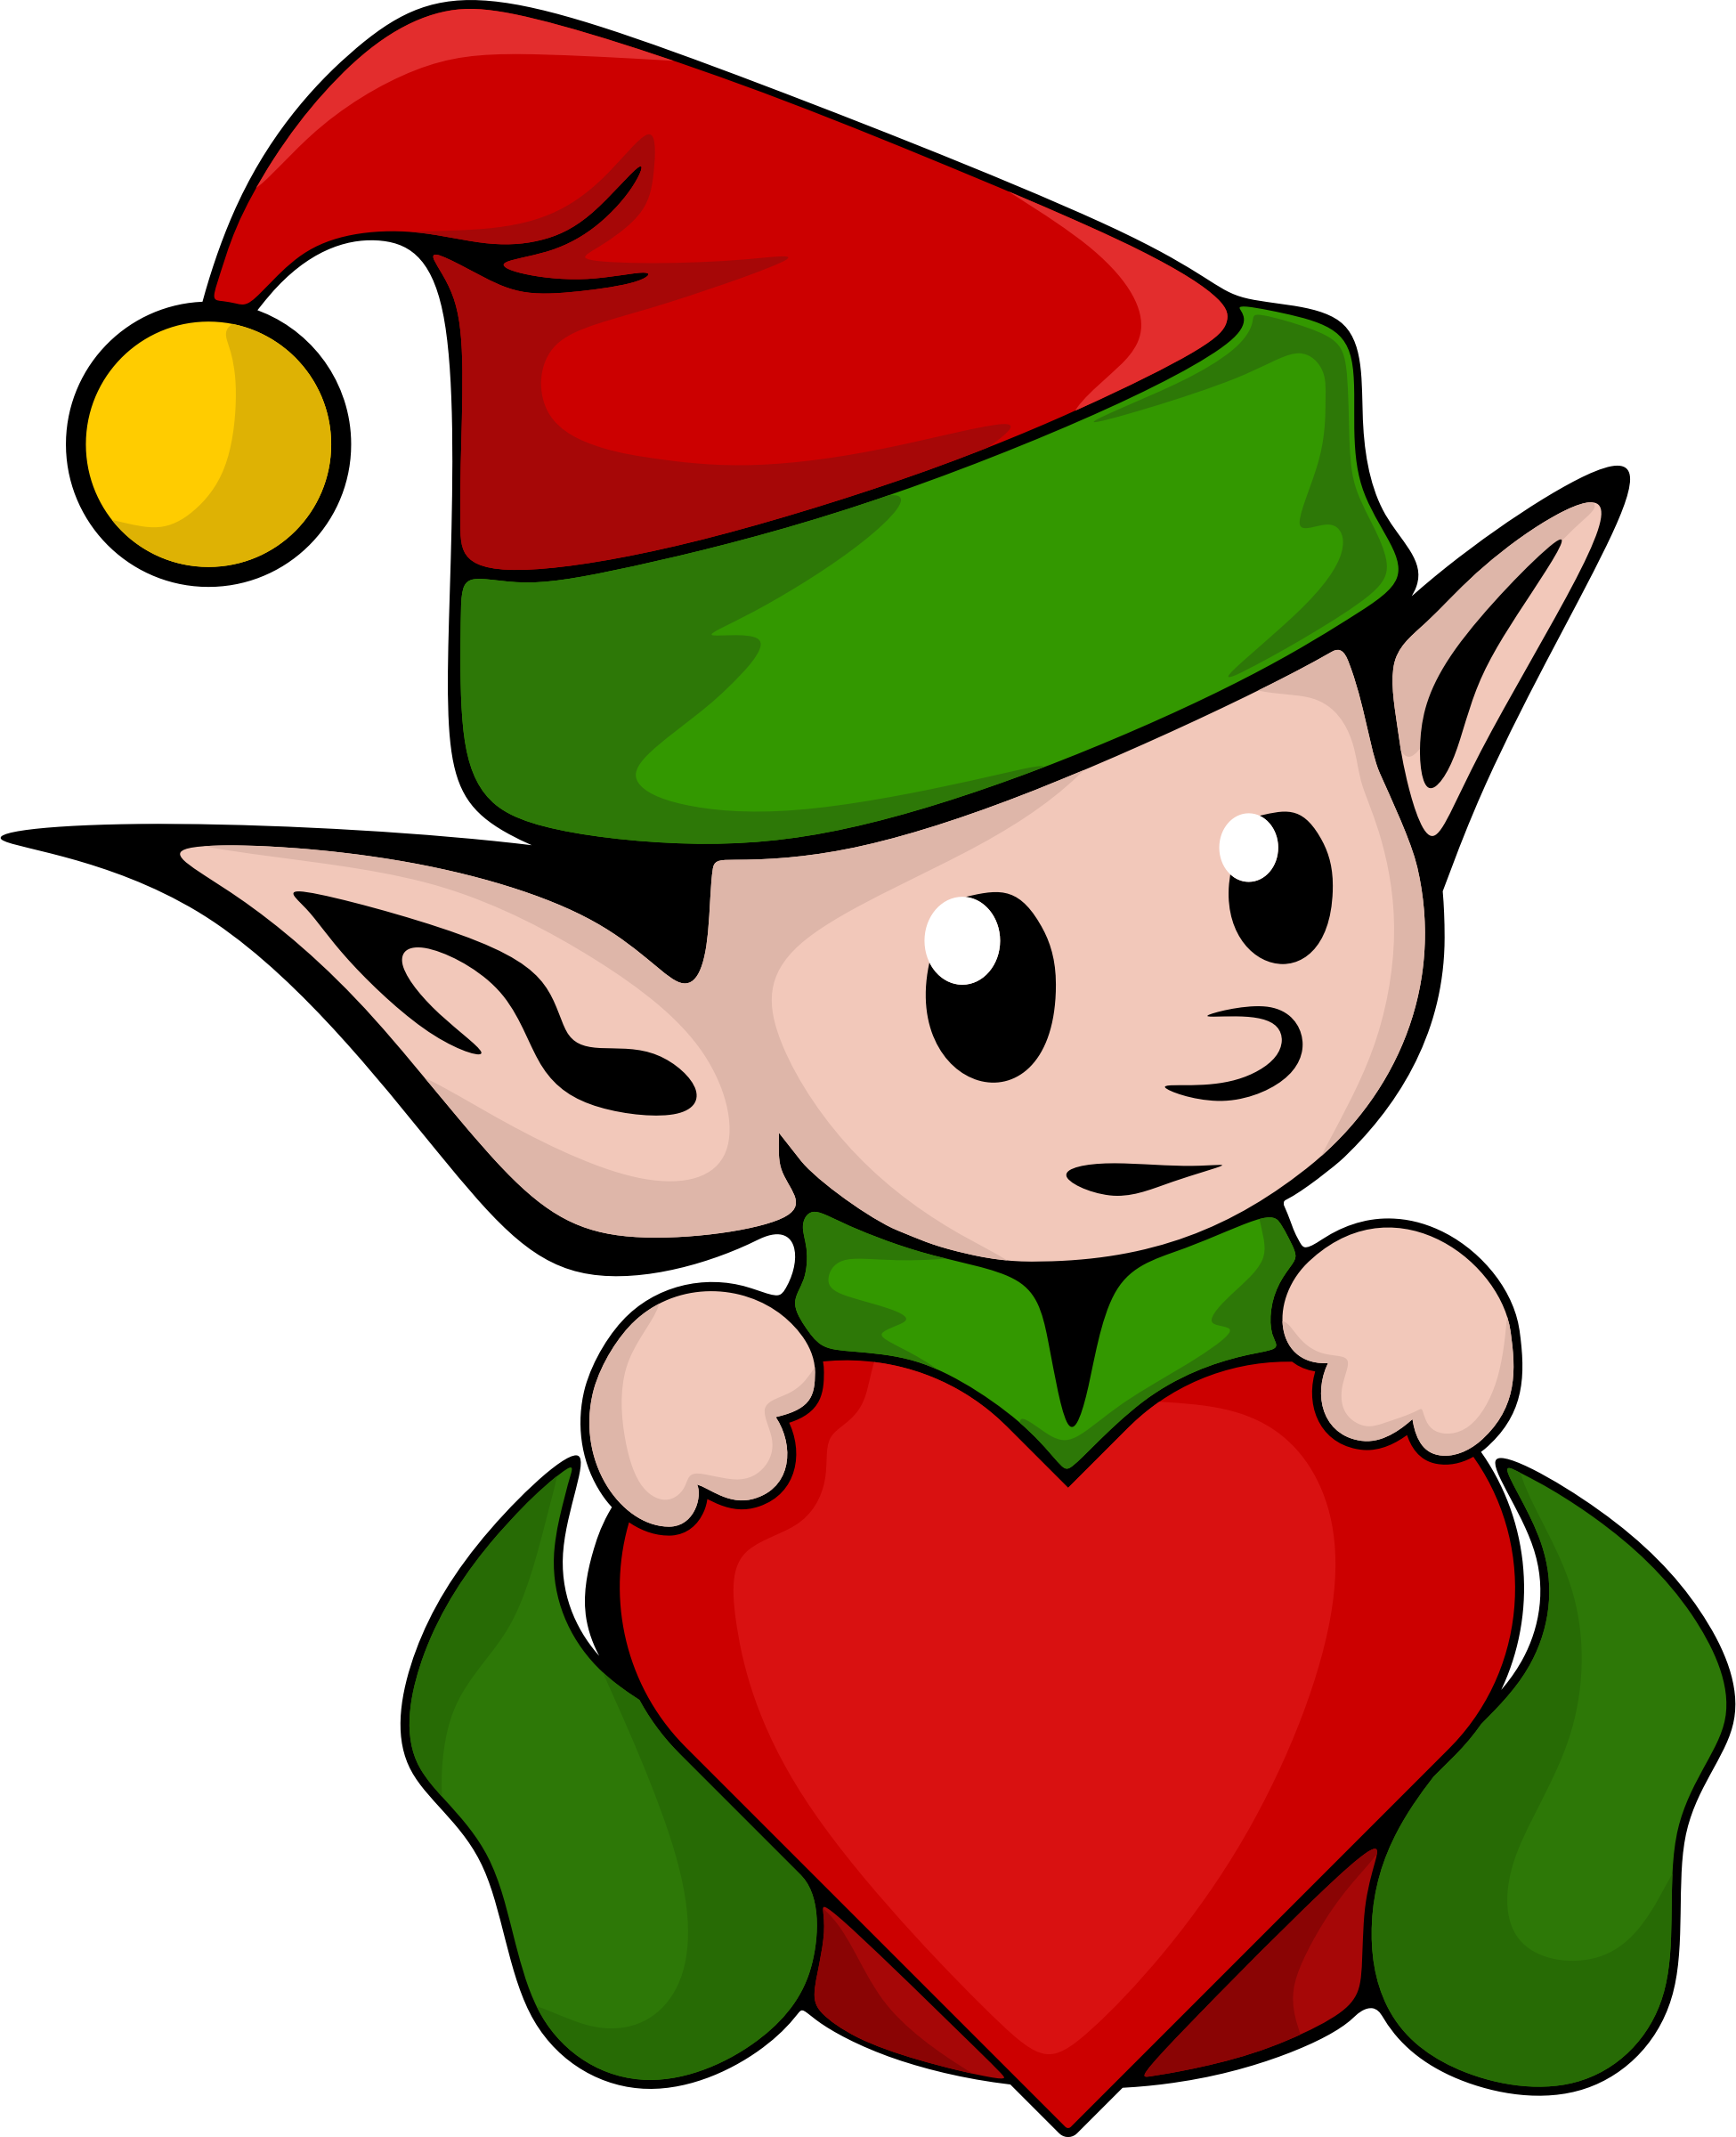 Elf with Heart PNG 171x210 - Elf PNG Transparent Free Images - Baby Elf PNG